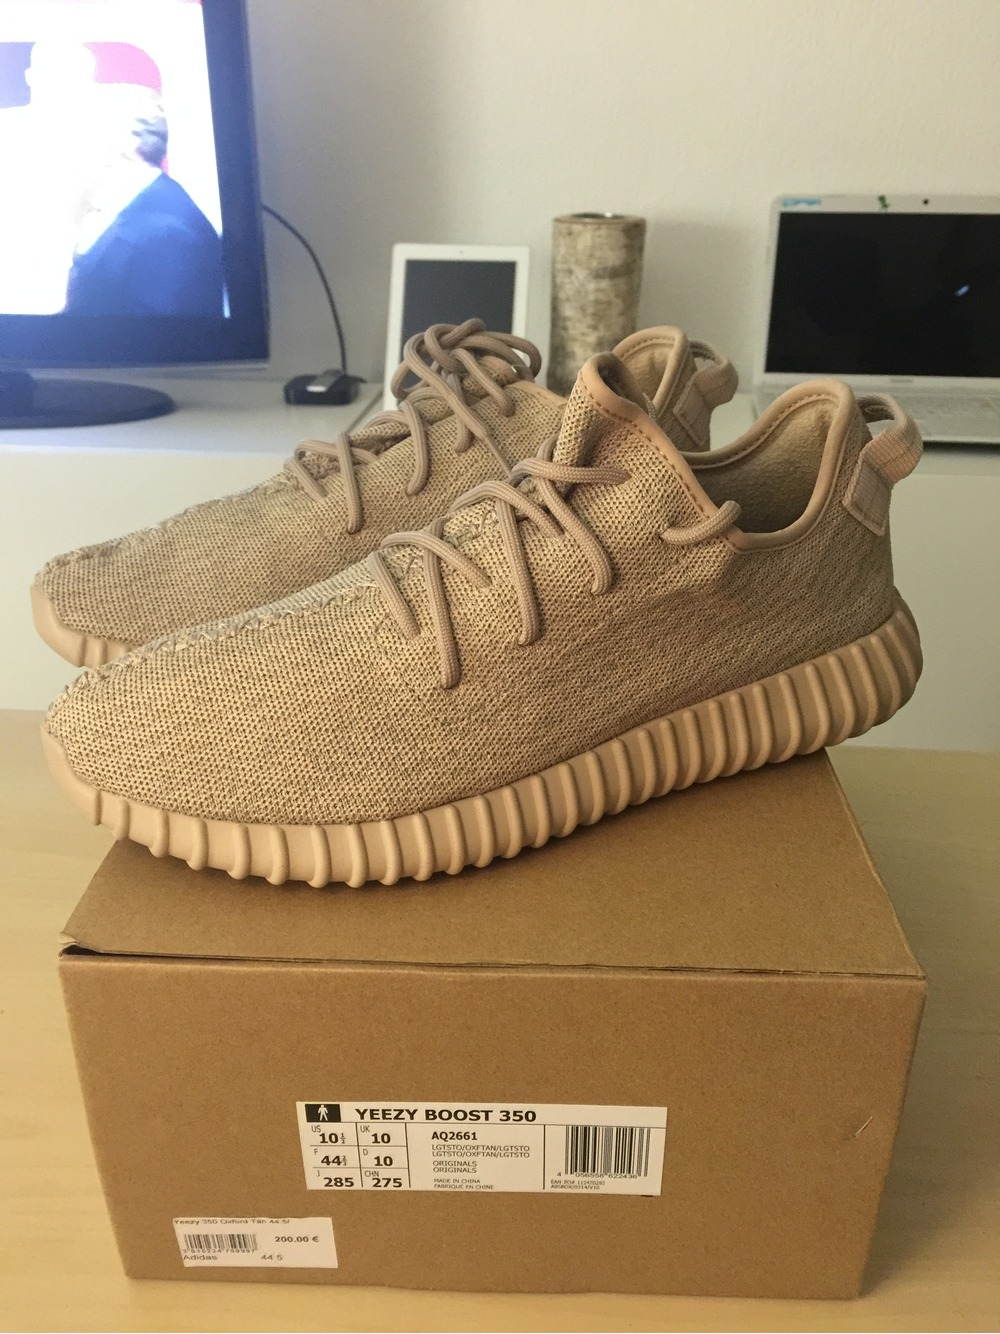 dfbd25357ca ... adidas yeezy boost 350 sale october yeezys